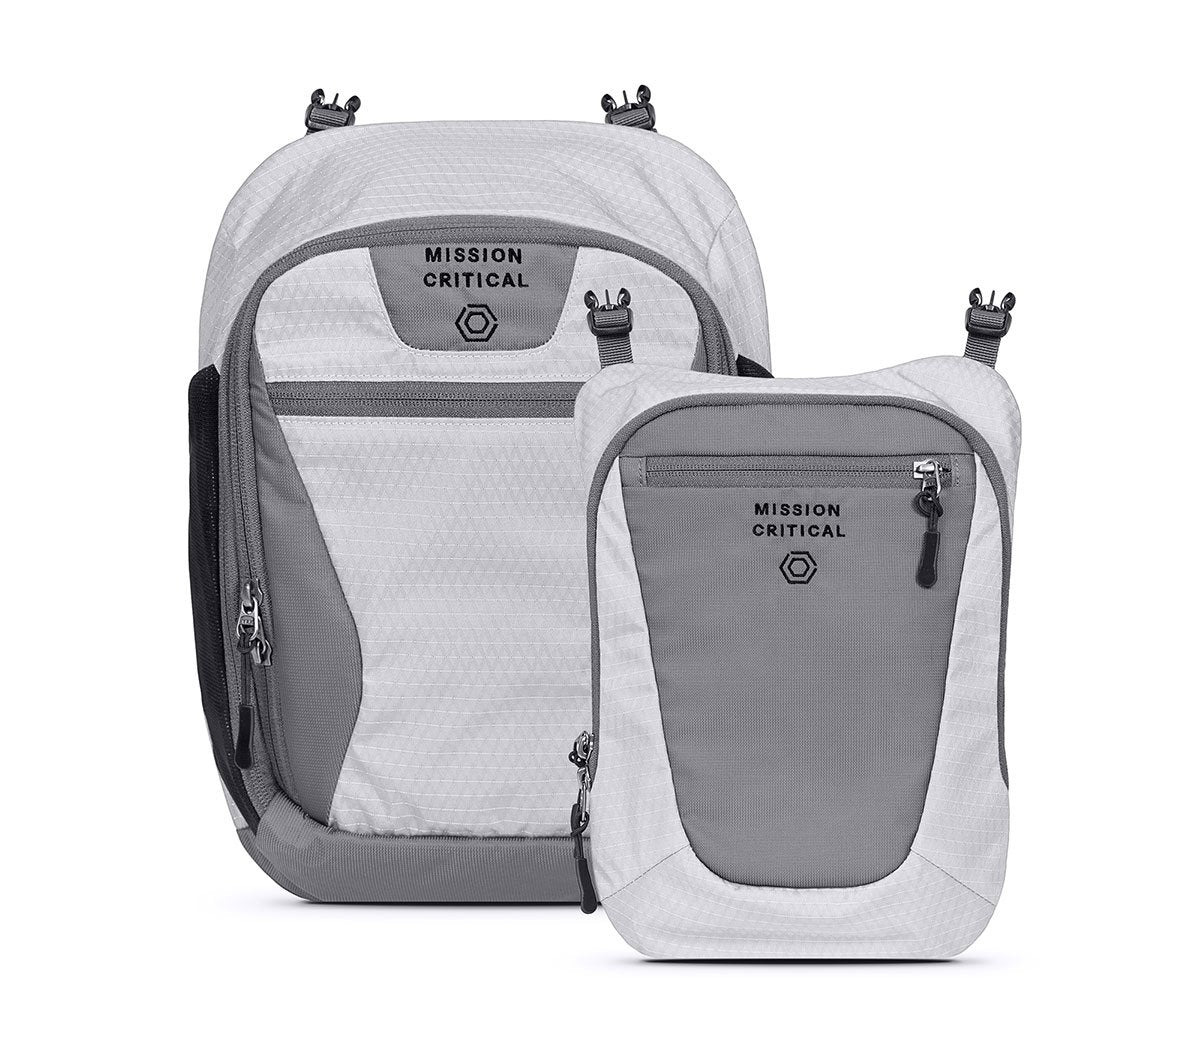 S.02 Adventure Daypacks